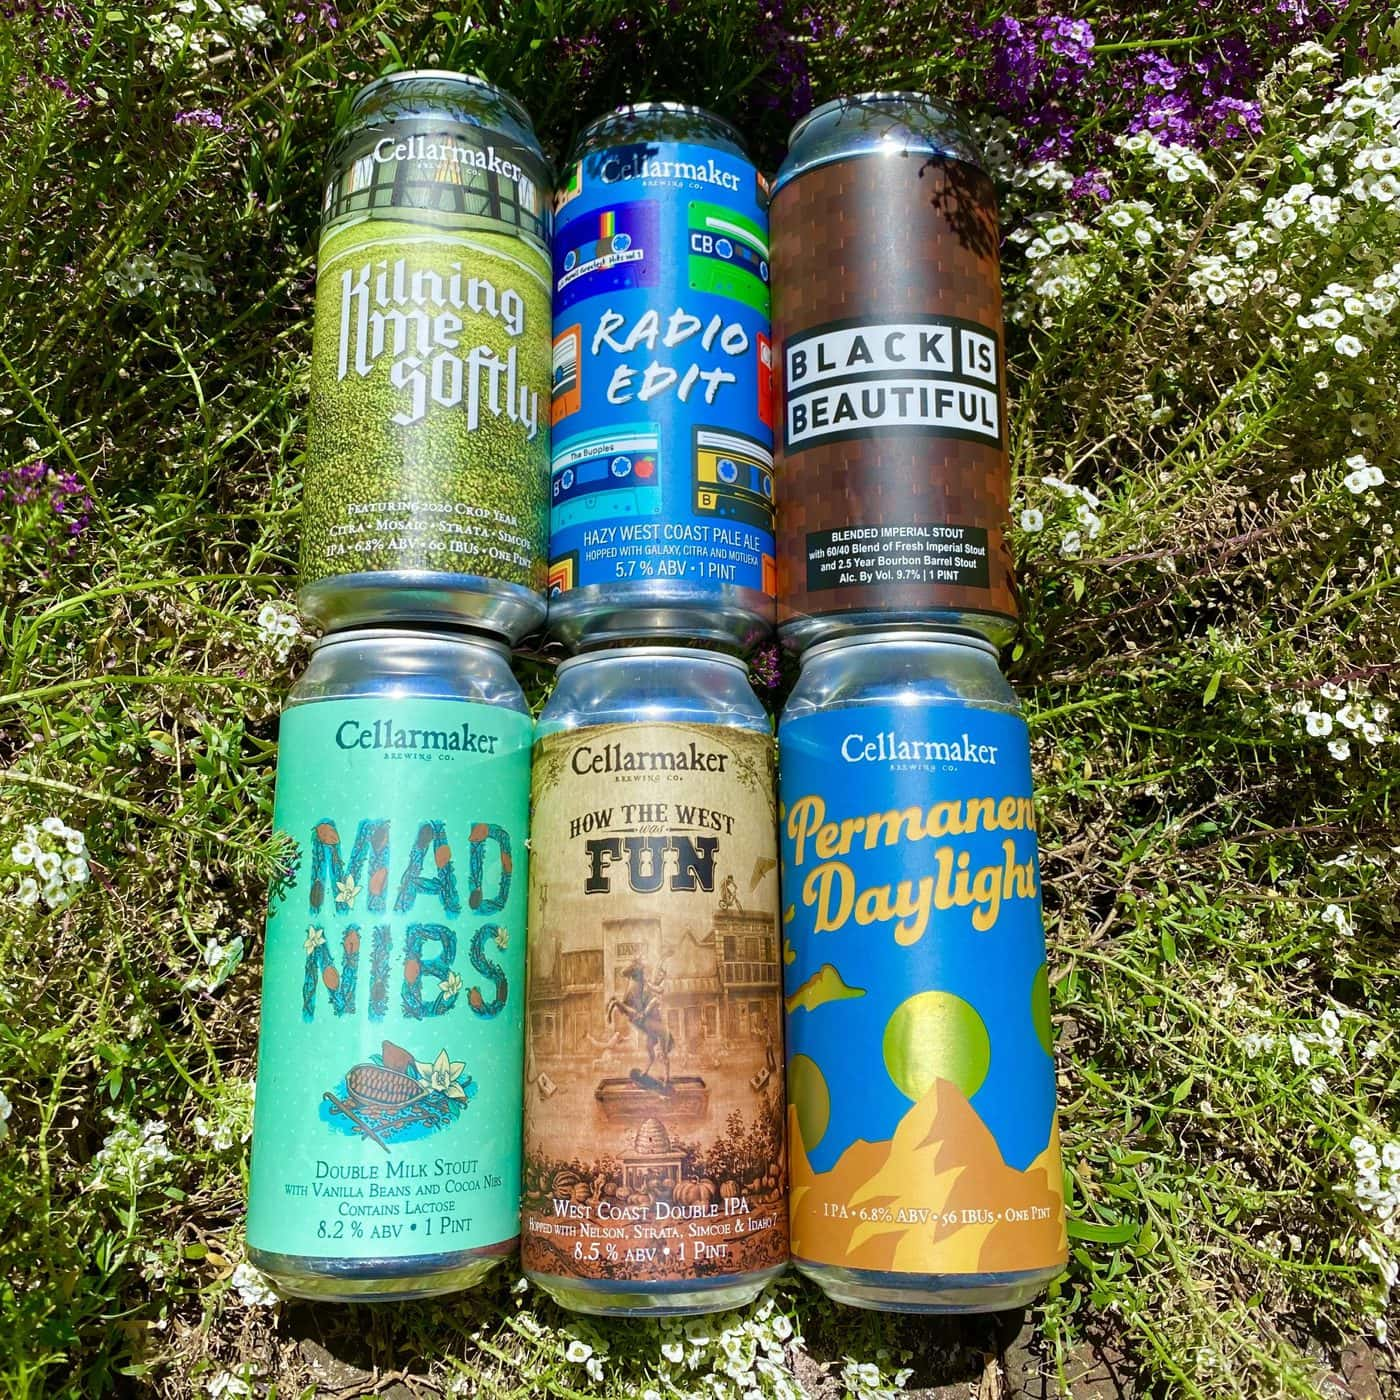 FULL CASE 24 CANS 6 BEER MIX – 4 How The West Was Fun DIPA, 4 Permanent Daylight IPA, 4 Mad Nibs Double Milk Stout, 4 Black Is Beautiful Blended Imperial Stout, 4 Radio Edit Pale Ale And Kilning Me Softly IPA- Shipping Out Tuesday 6/22 For Next Day Delivery*